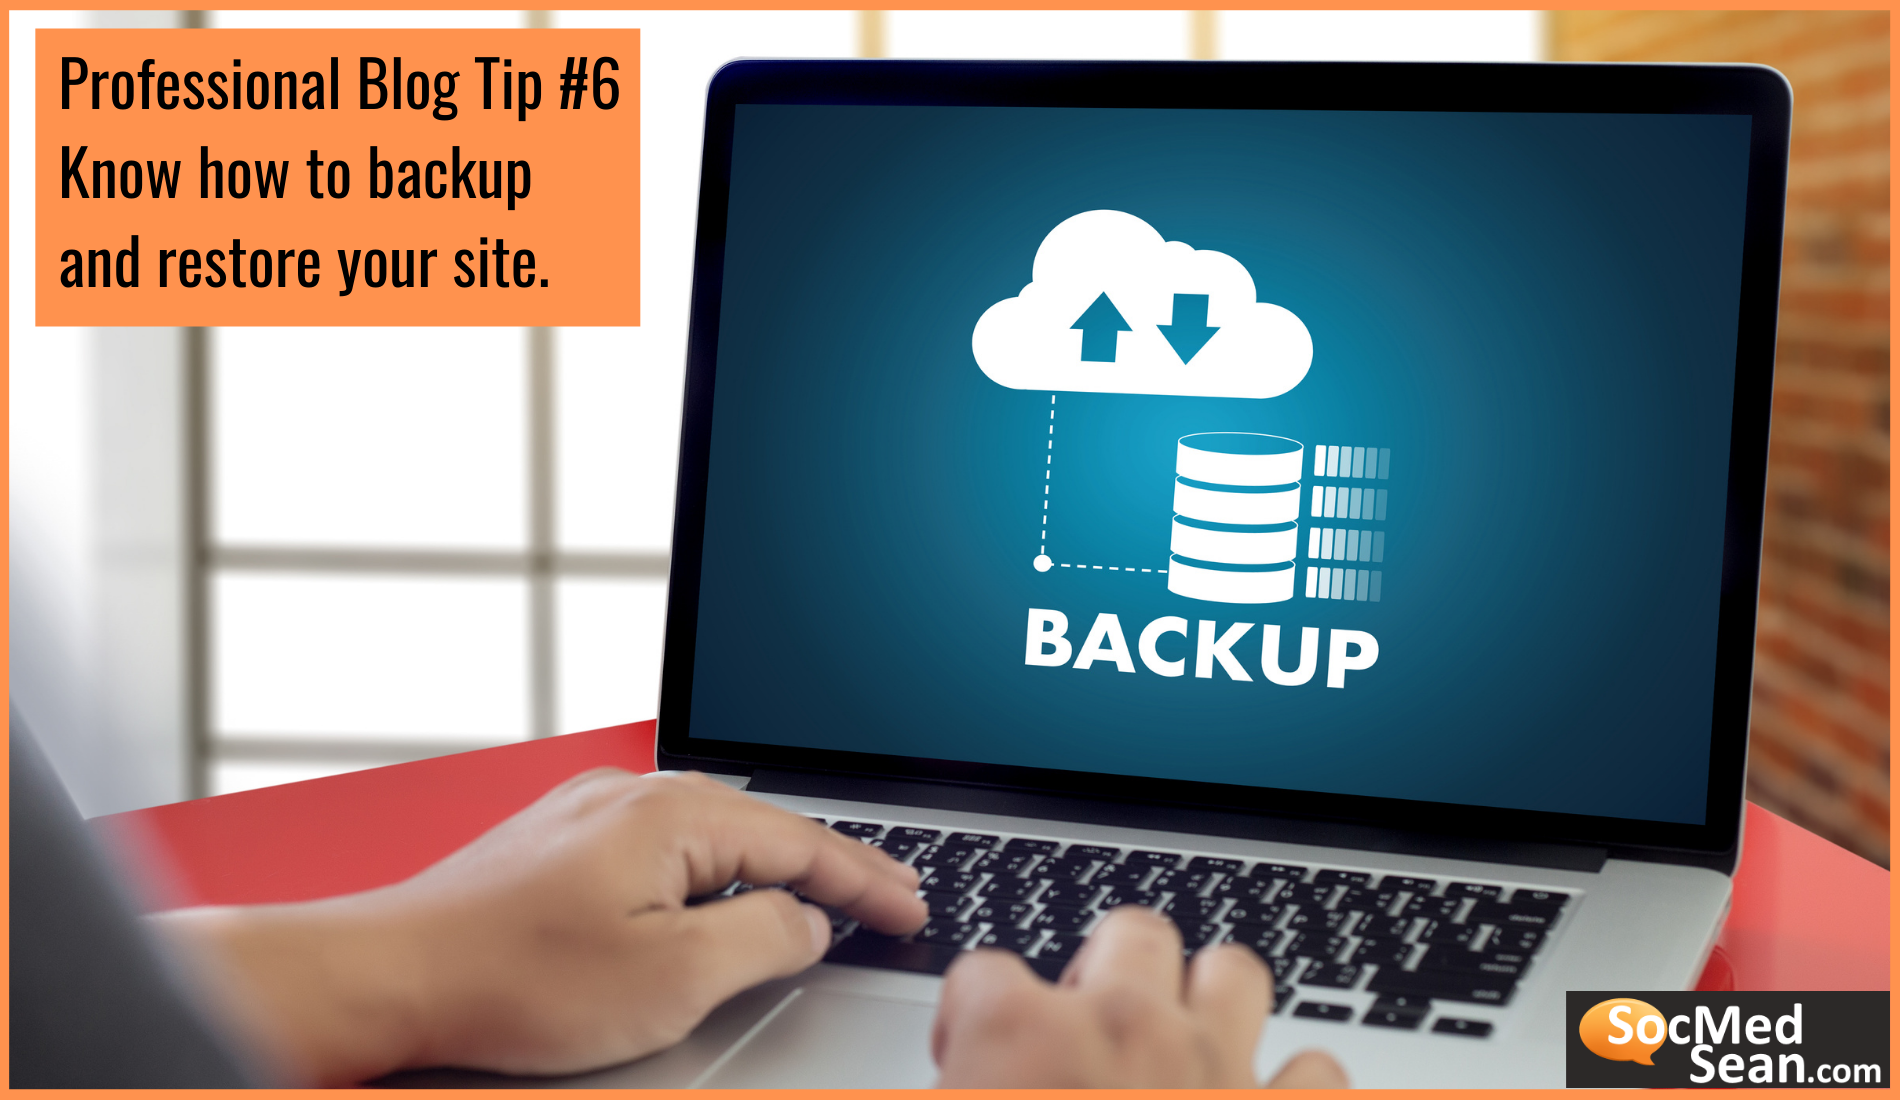 Blogging Tip - Learn how to create and restore backups of your site